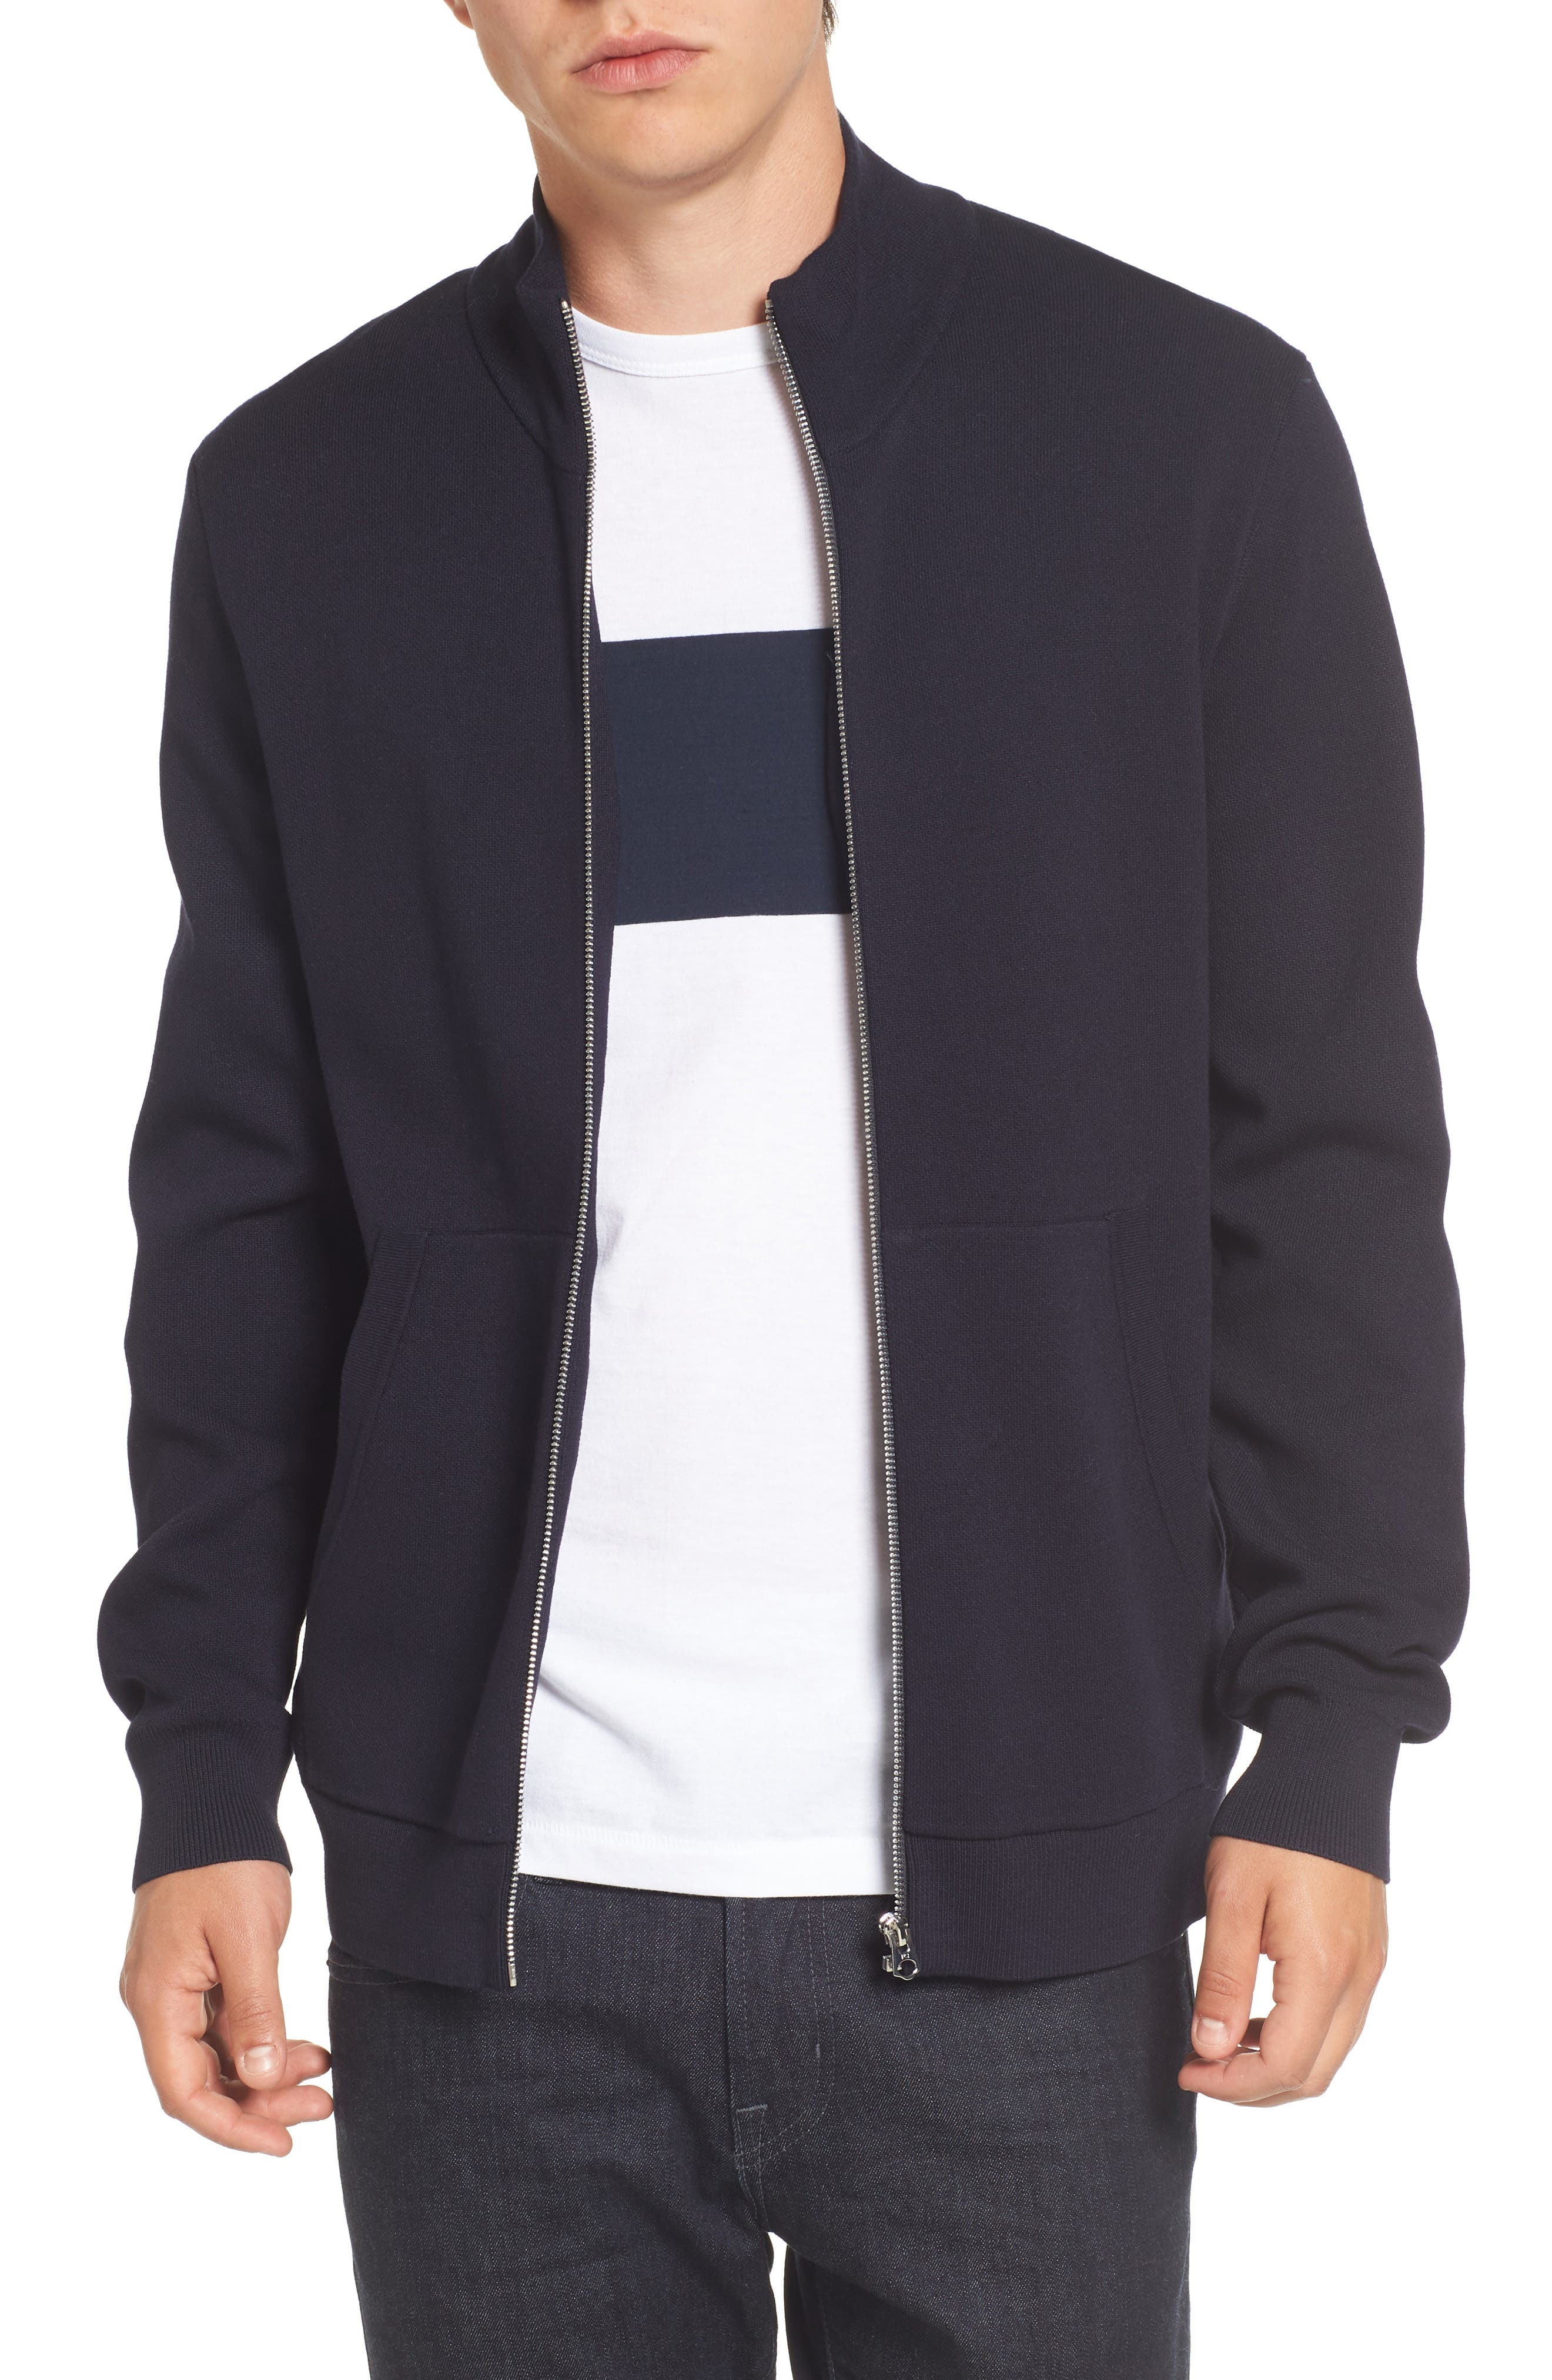 Lakra Zip-Up Sweater,                         Main,                         color, Marine Blue